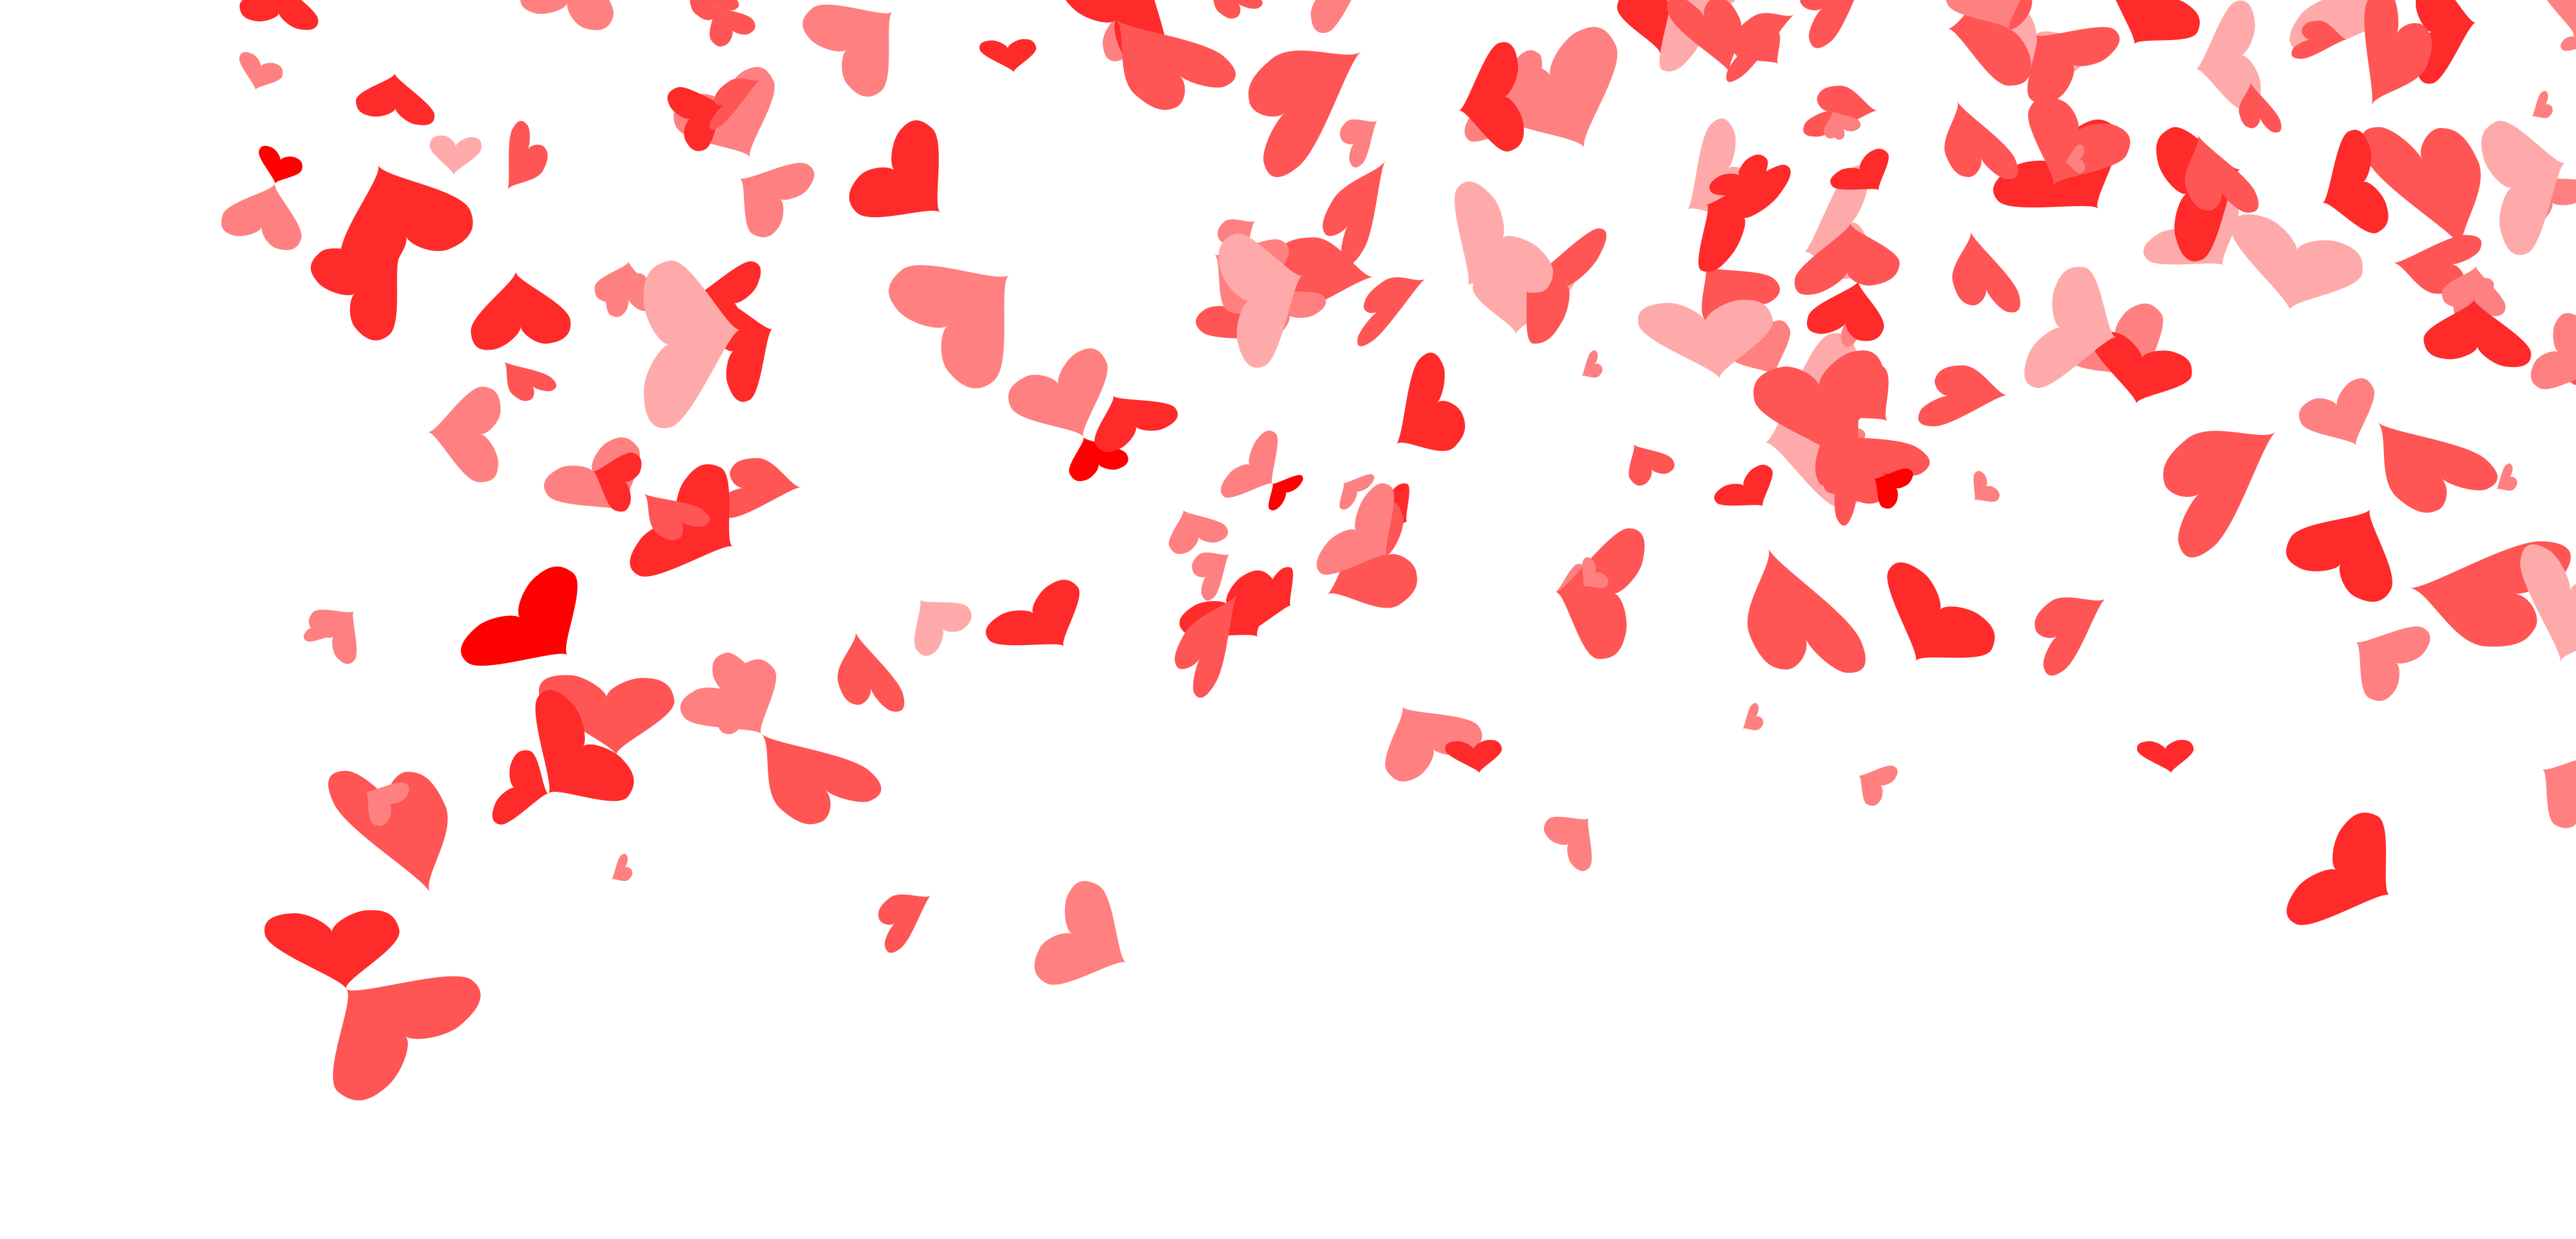 Heart confetti png. Background transparent onlygfx